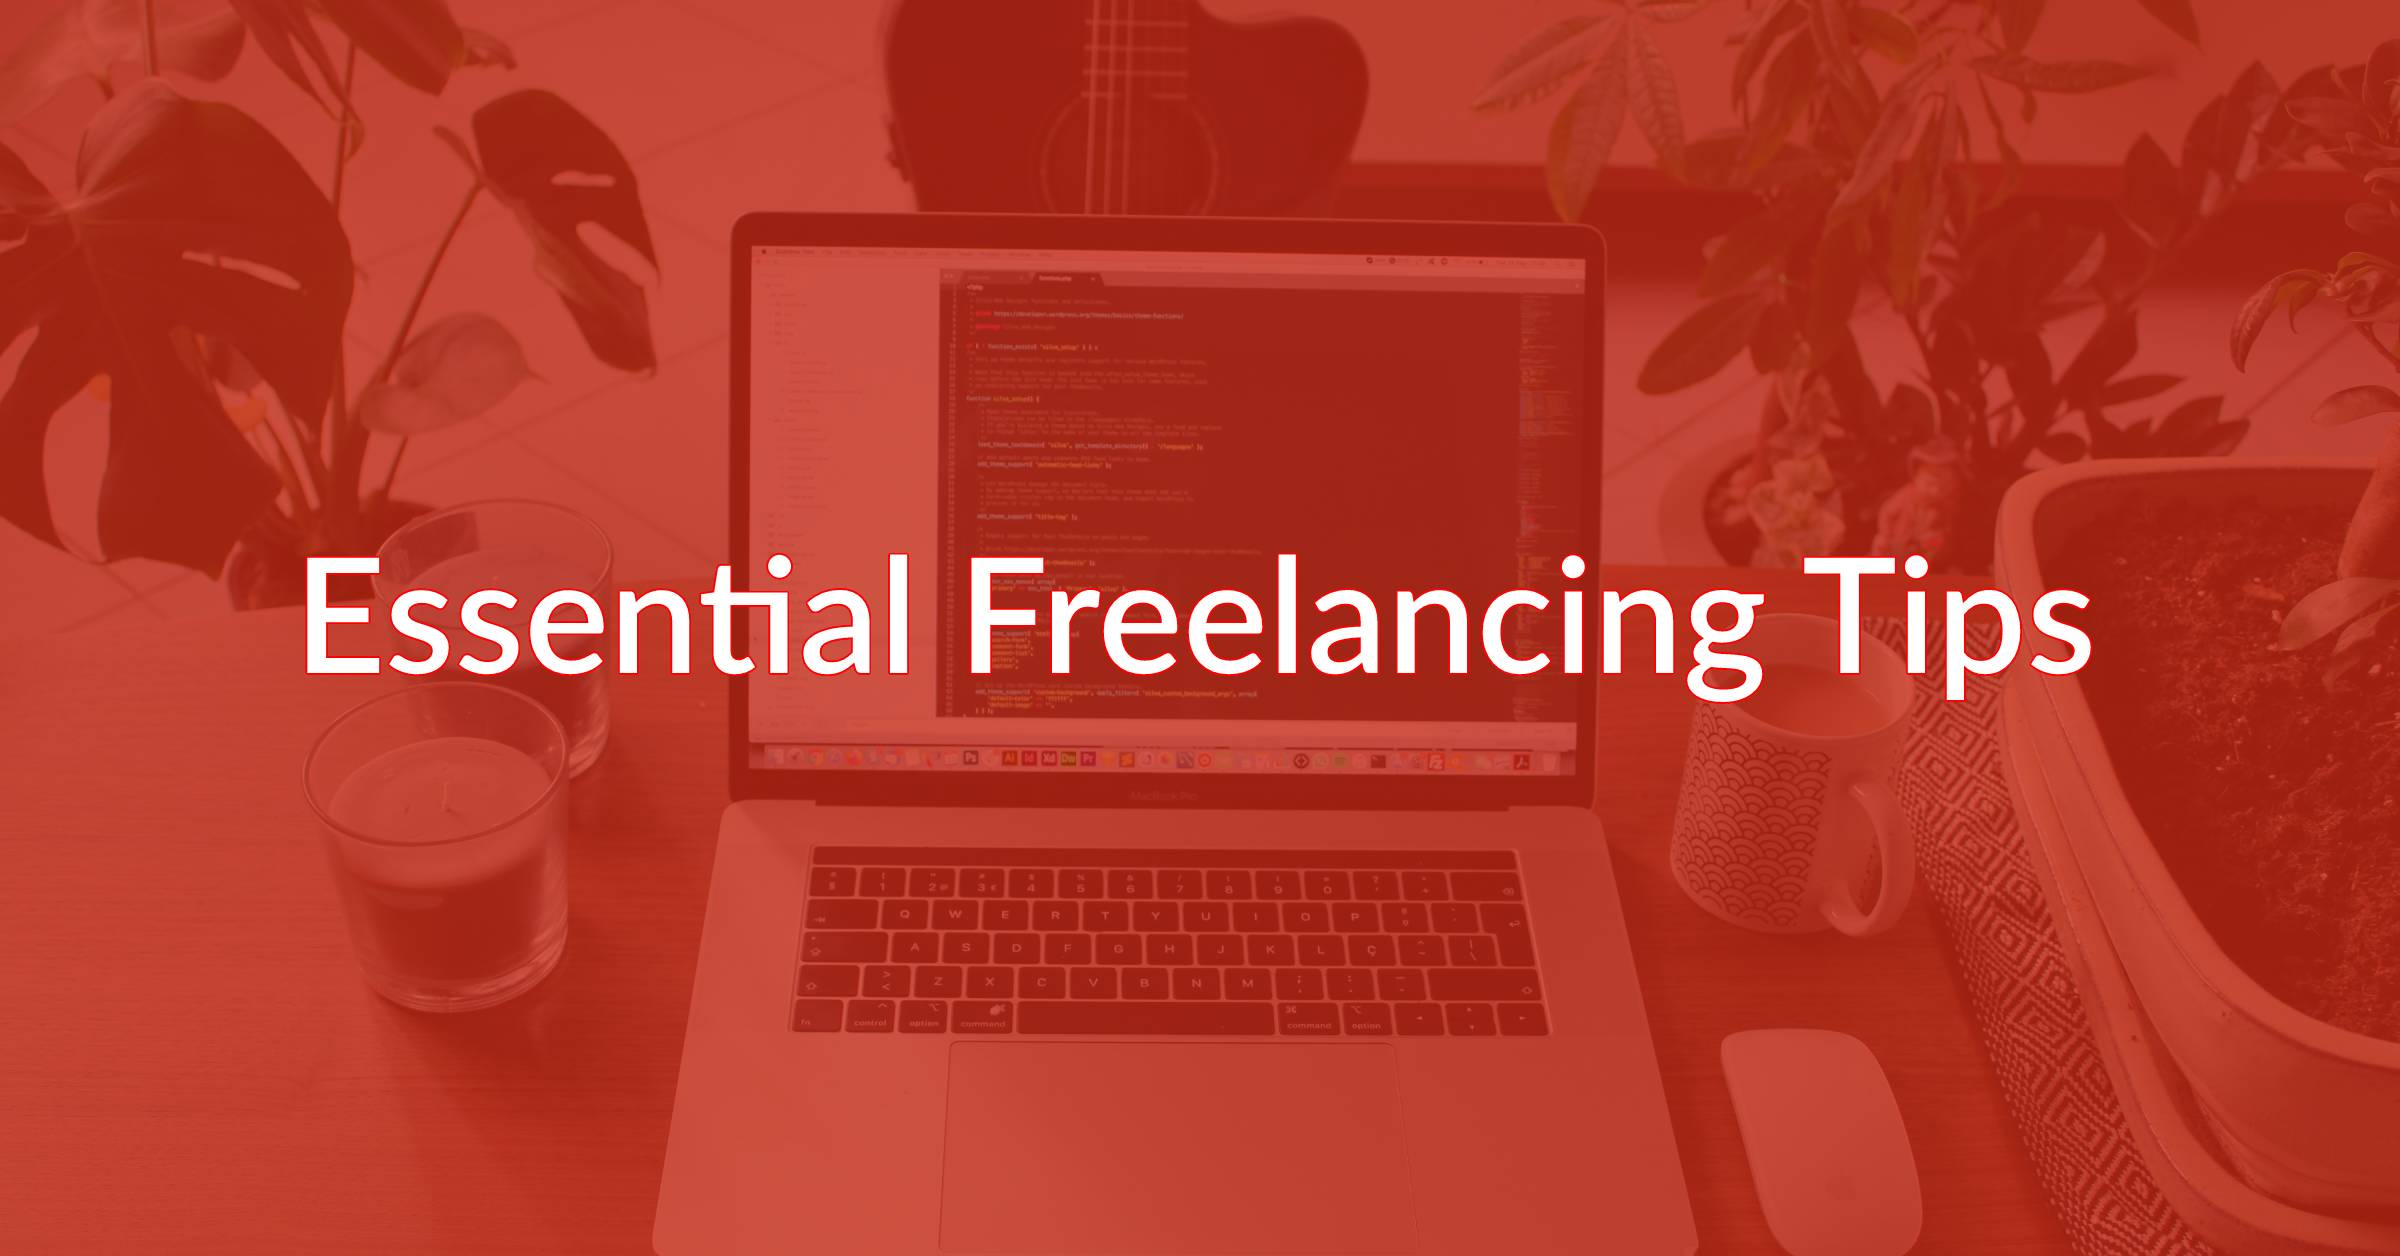 11 Essential Freelancing Tips That Will Lead You To Success